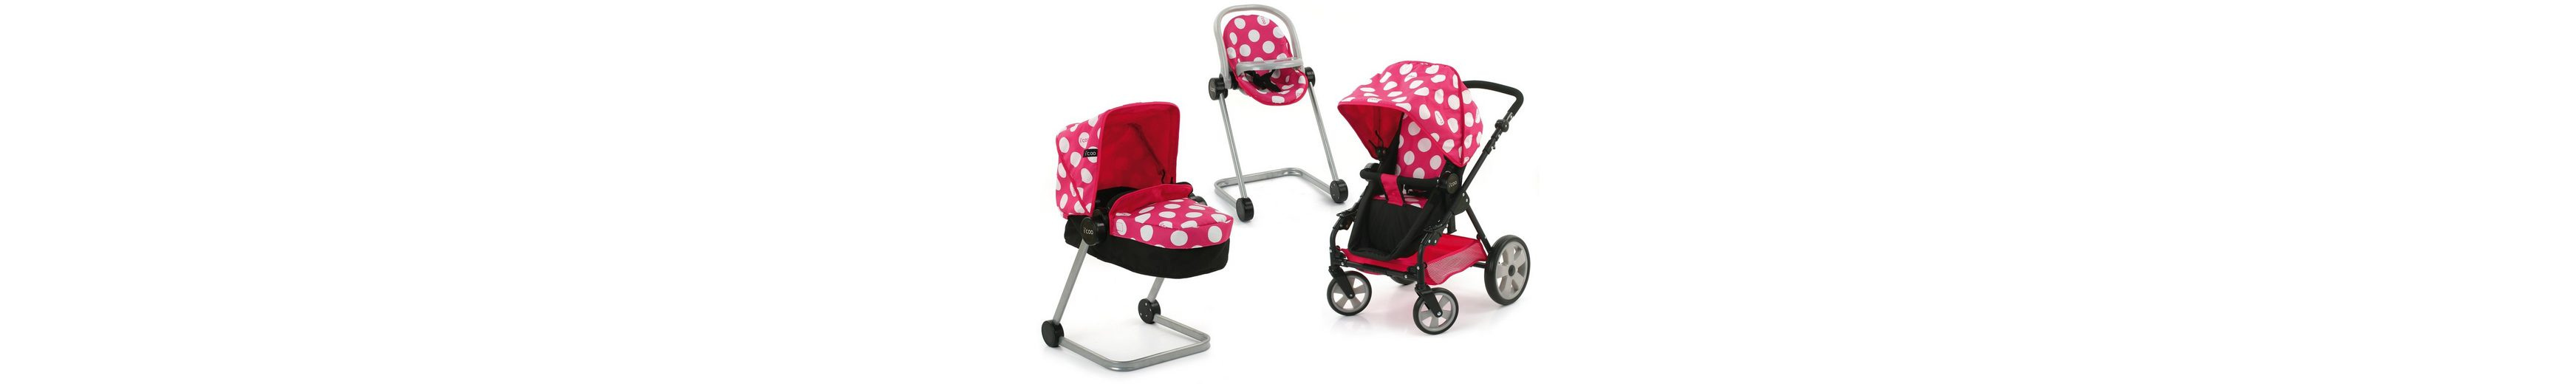 hauck TOYS FOR KIDS Puppenwagen-Set 4tlg., »i'coo Grow with me Set, Dotty Pink«